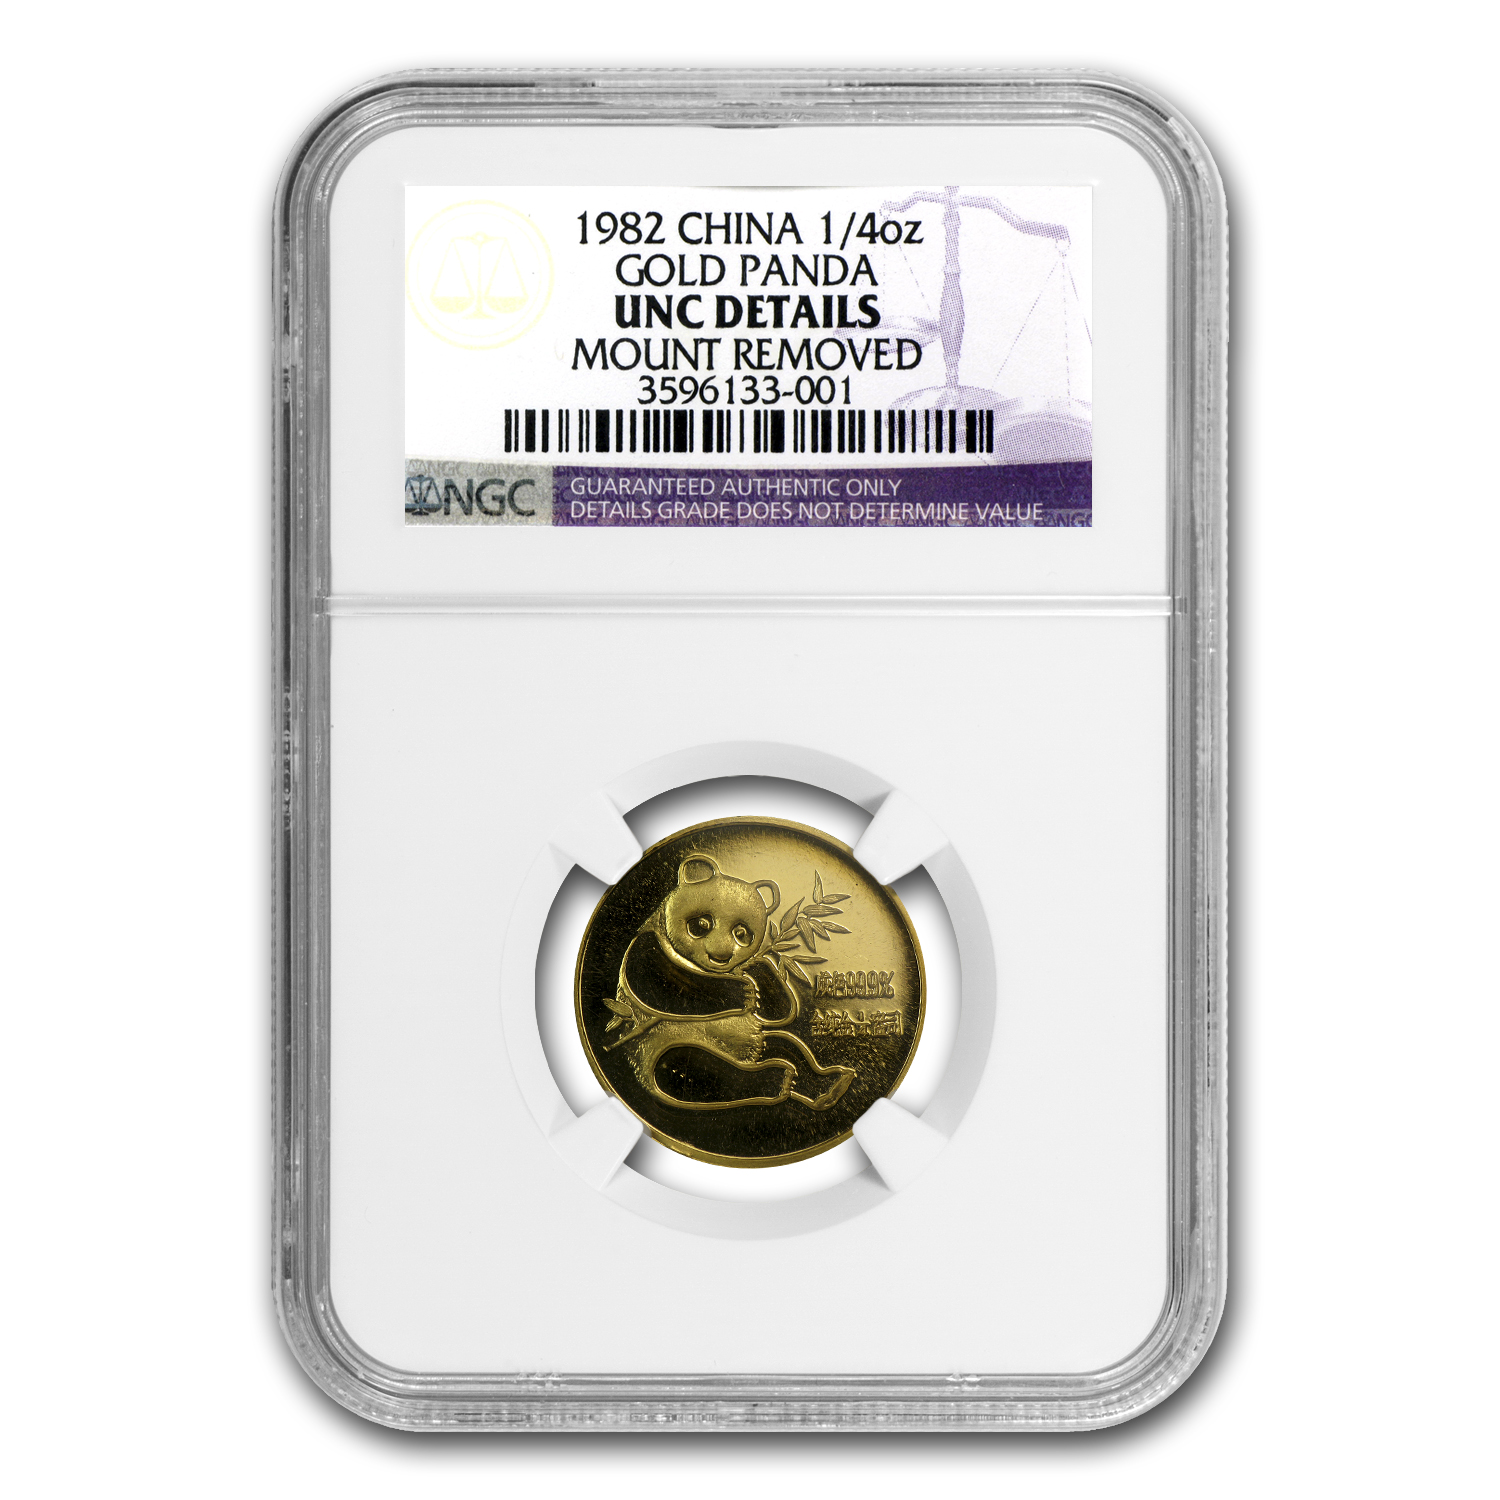 1982 China 1/4 oz Gold Panda Unc Details NGC